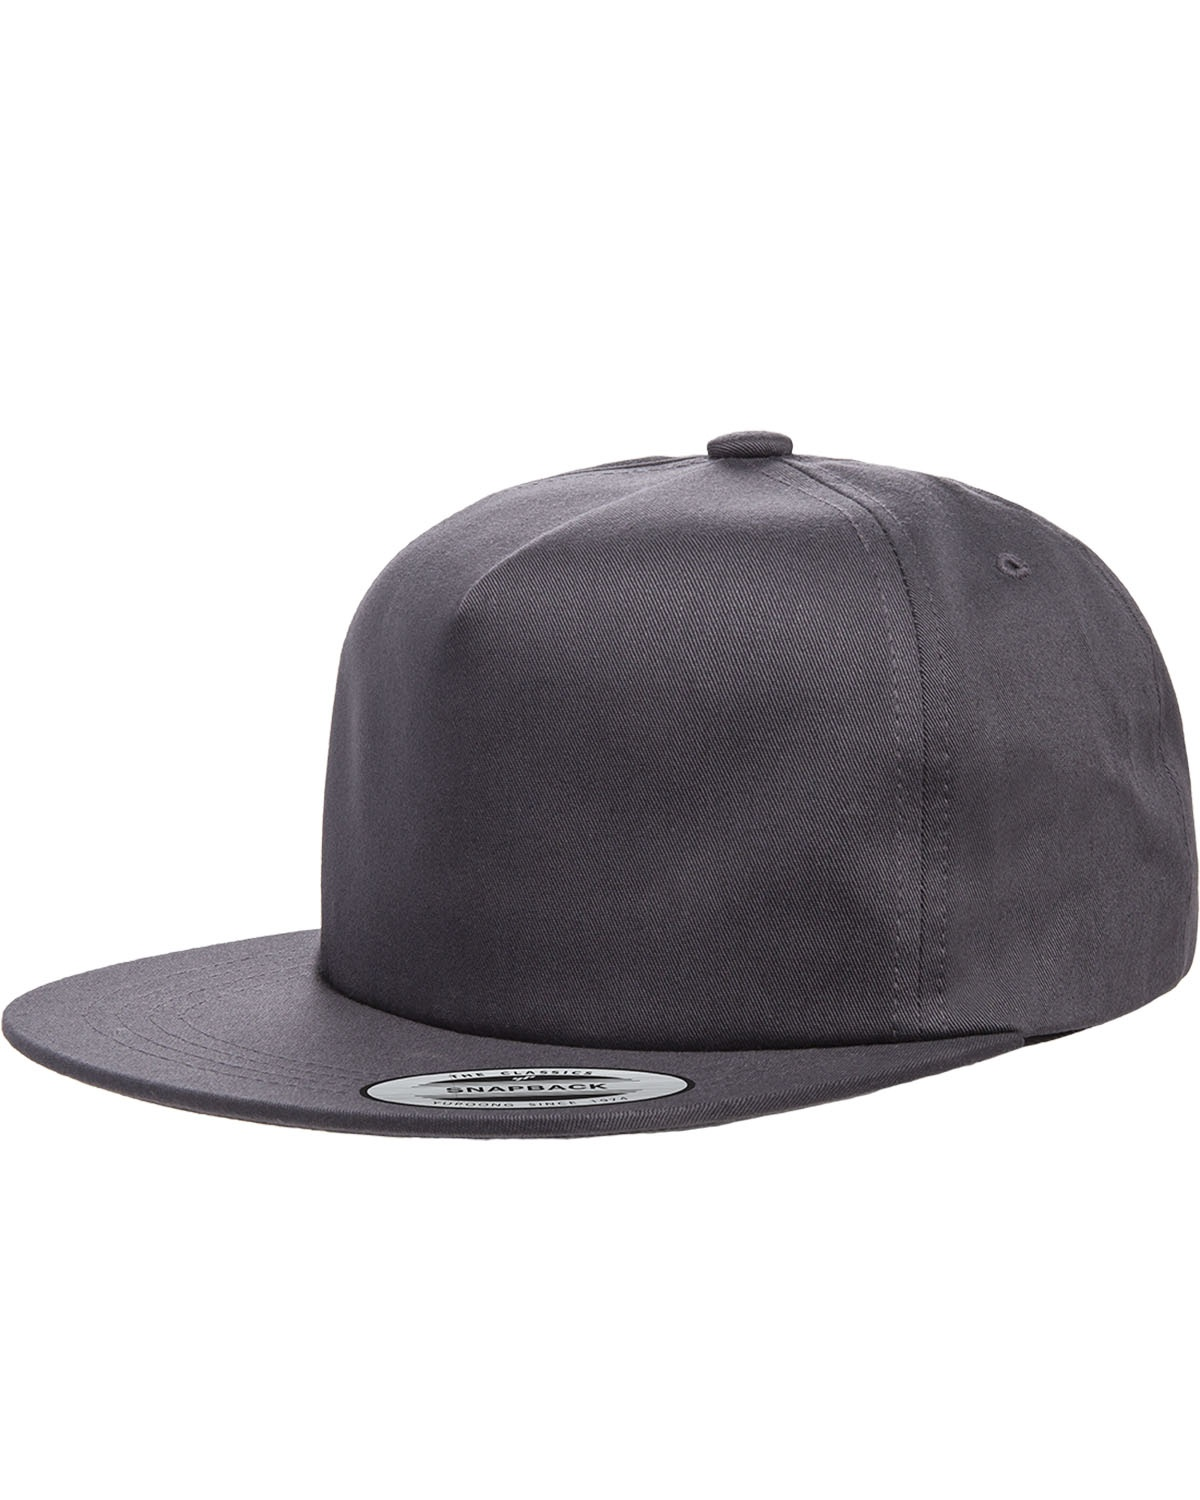 11d4a1b62 Yupoong Y6502 | Buy Adult Unstructured 5-Panel Snapback Cap ...